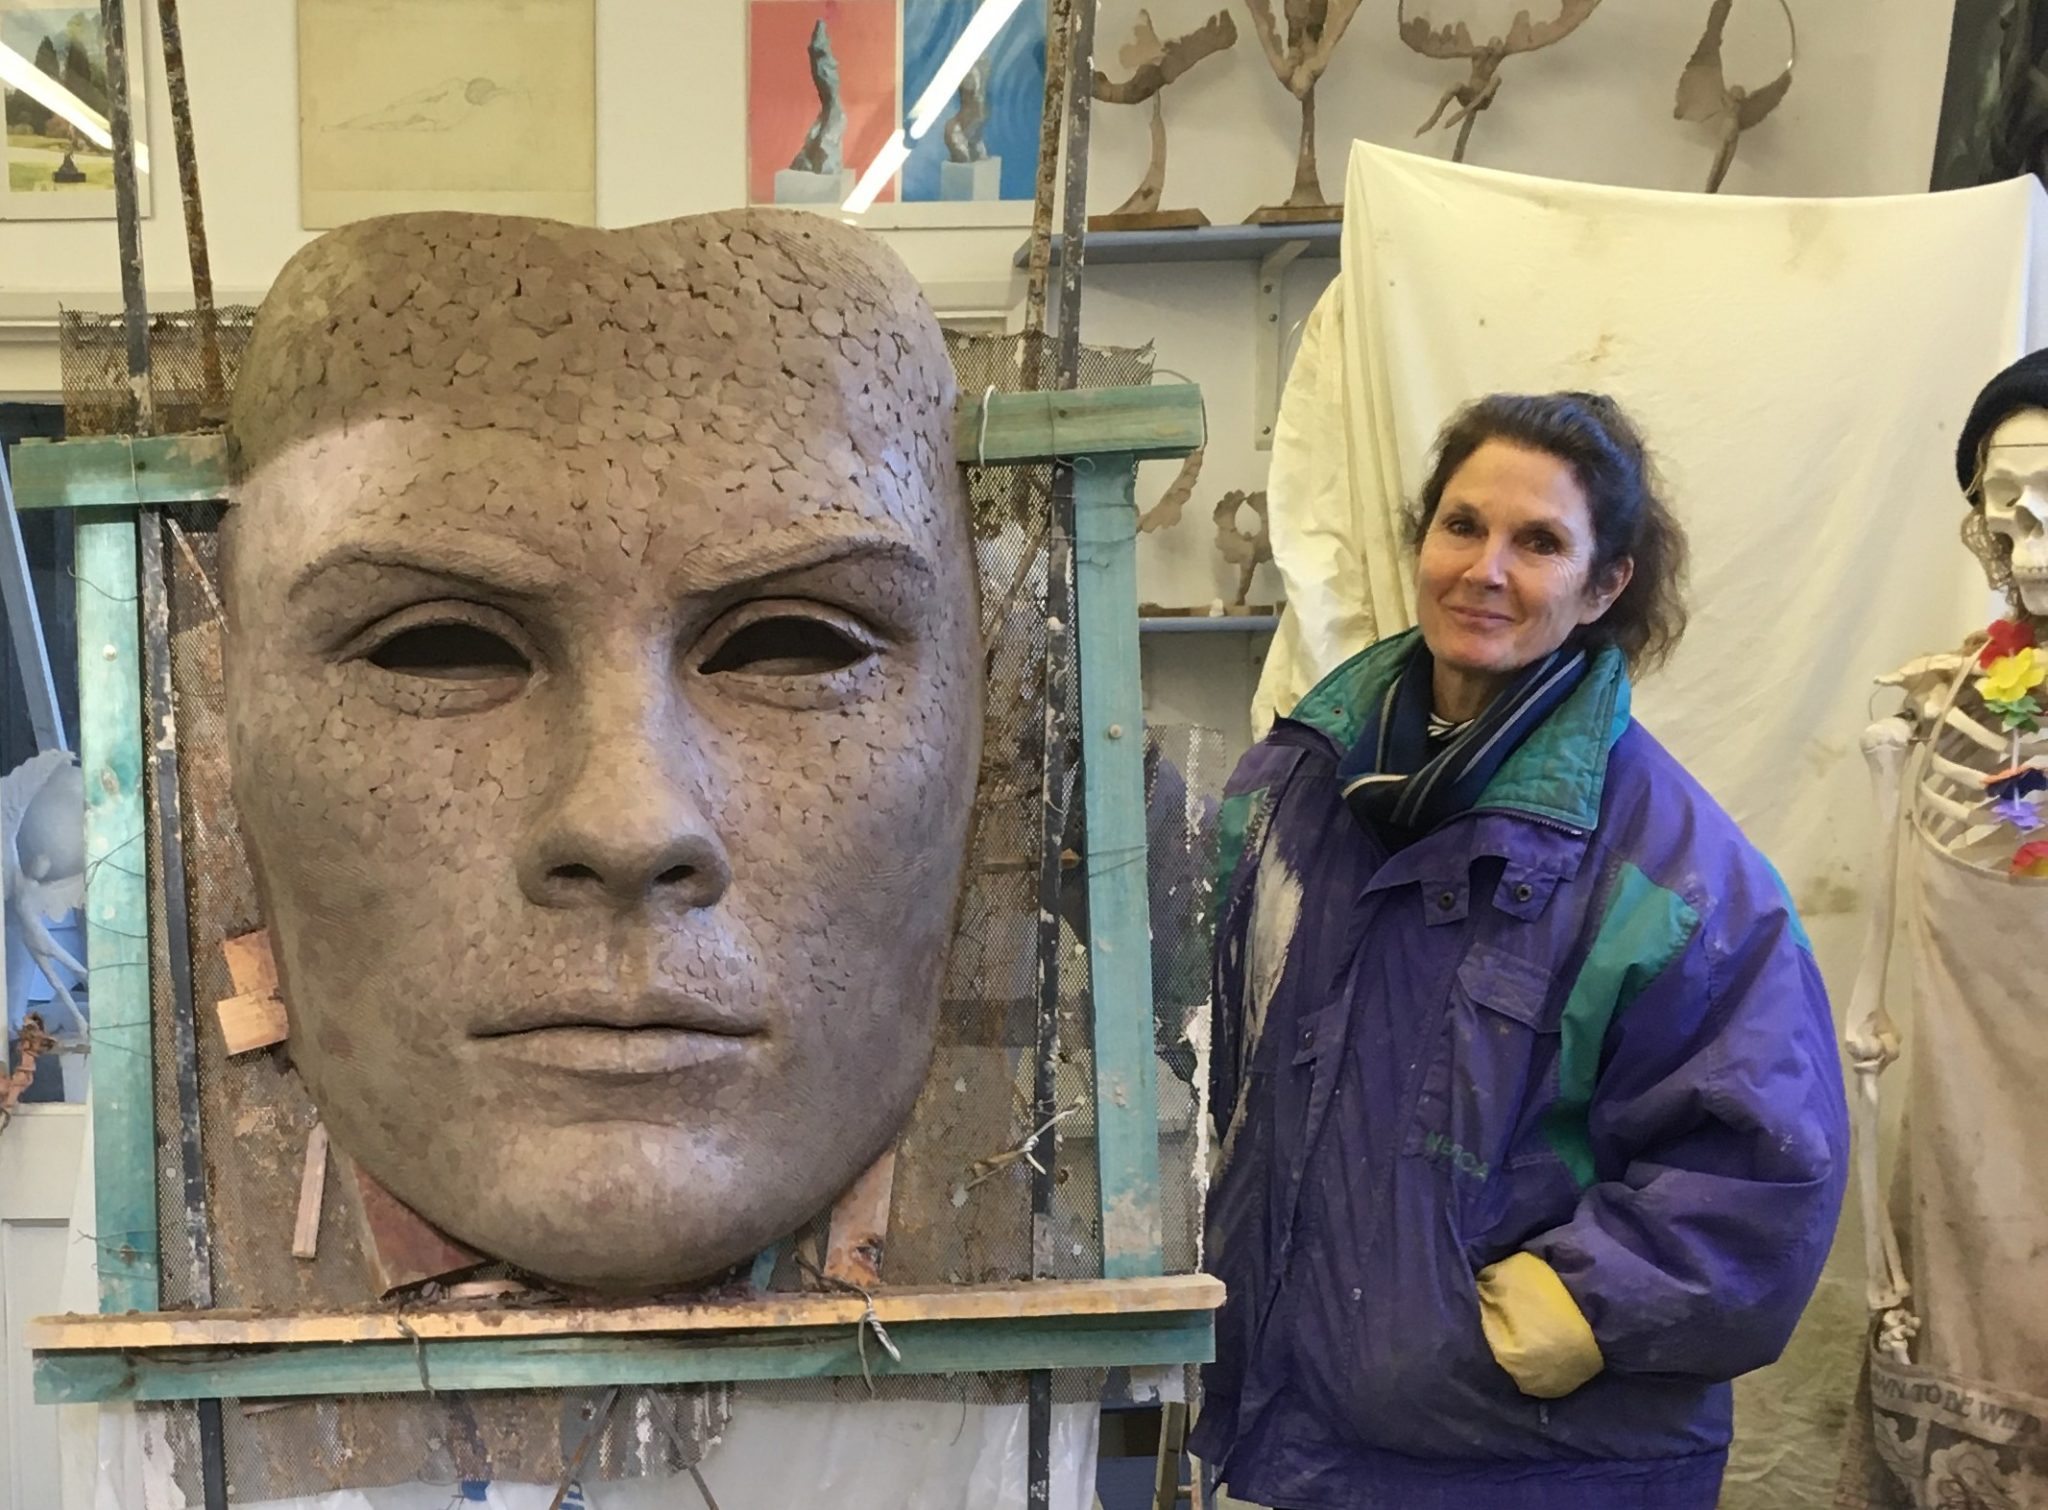 Clay work for large mask sculpture